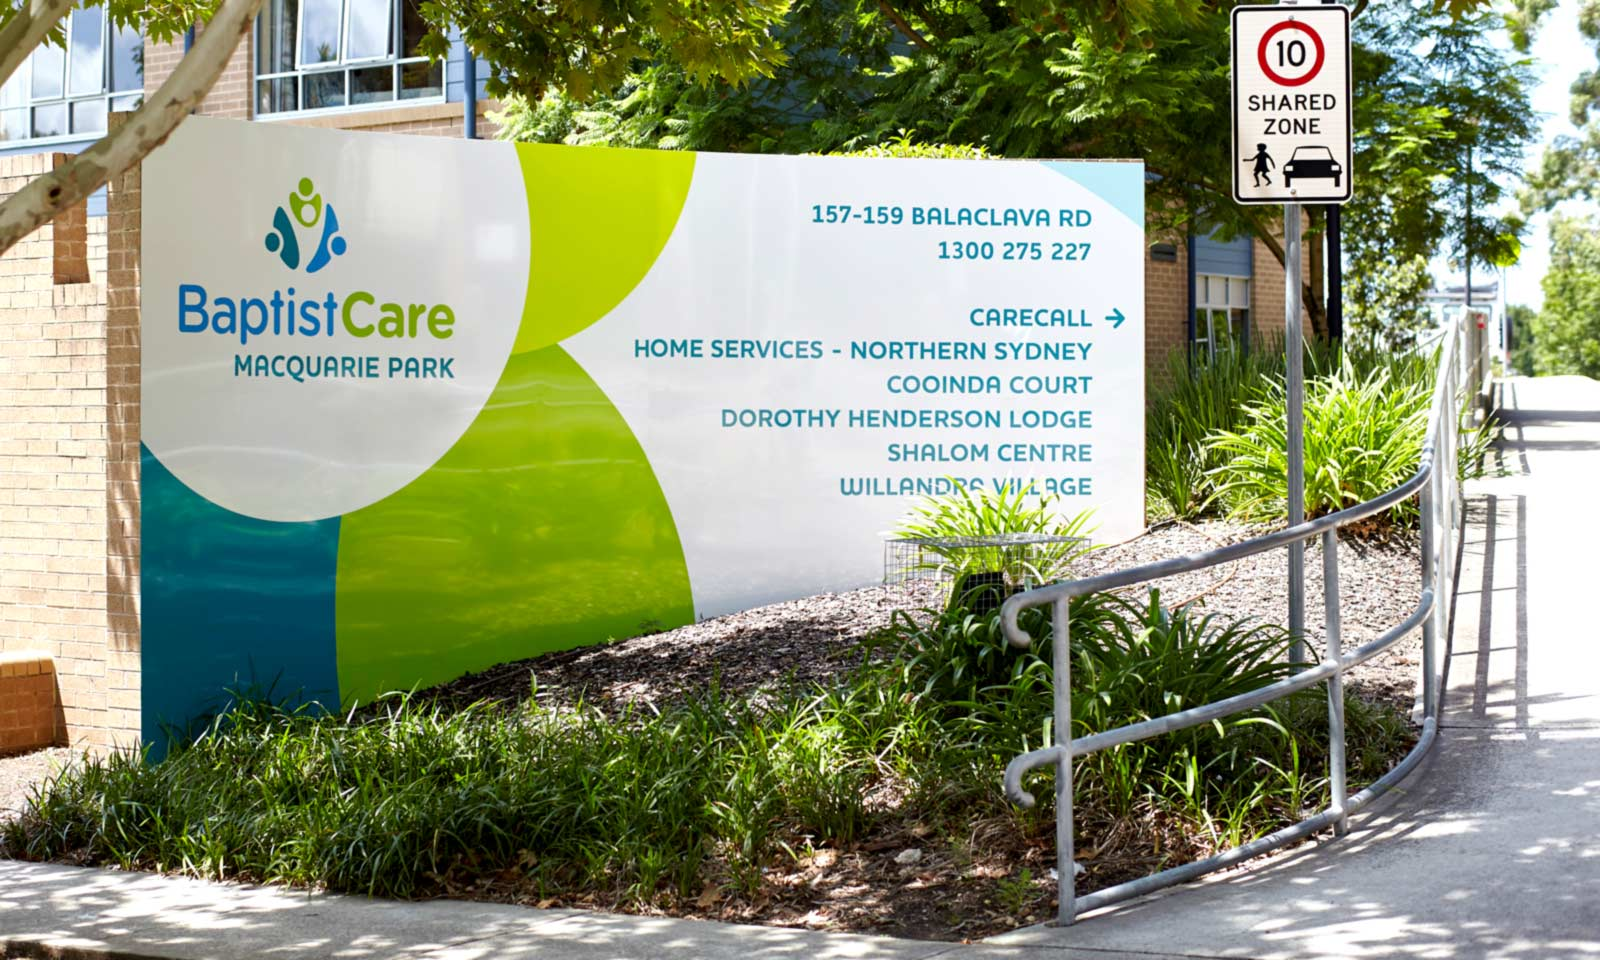 BaptistCare welcome directional signage part of the way-finding system.